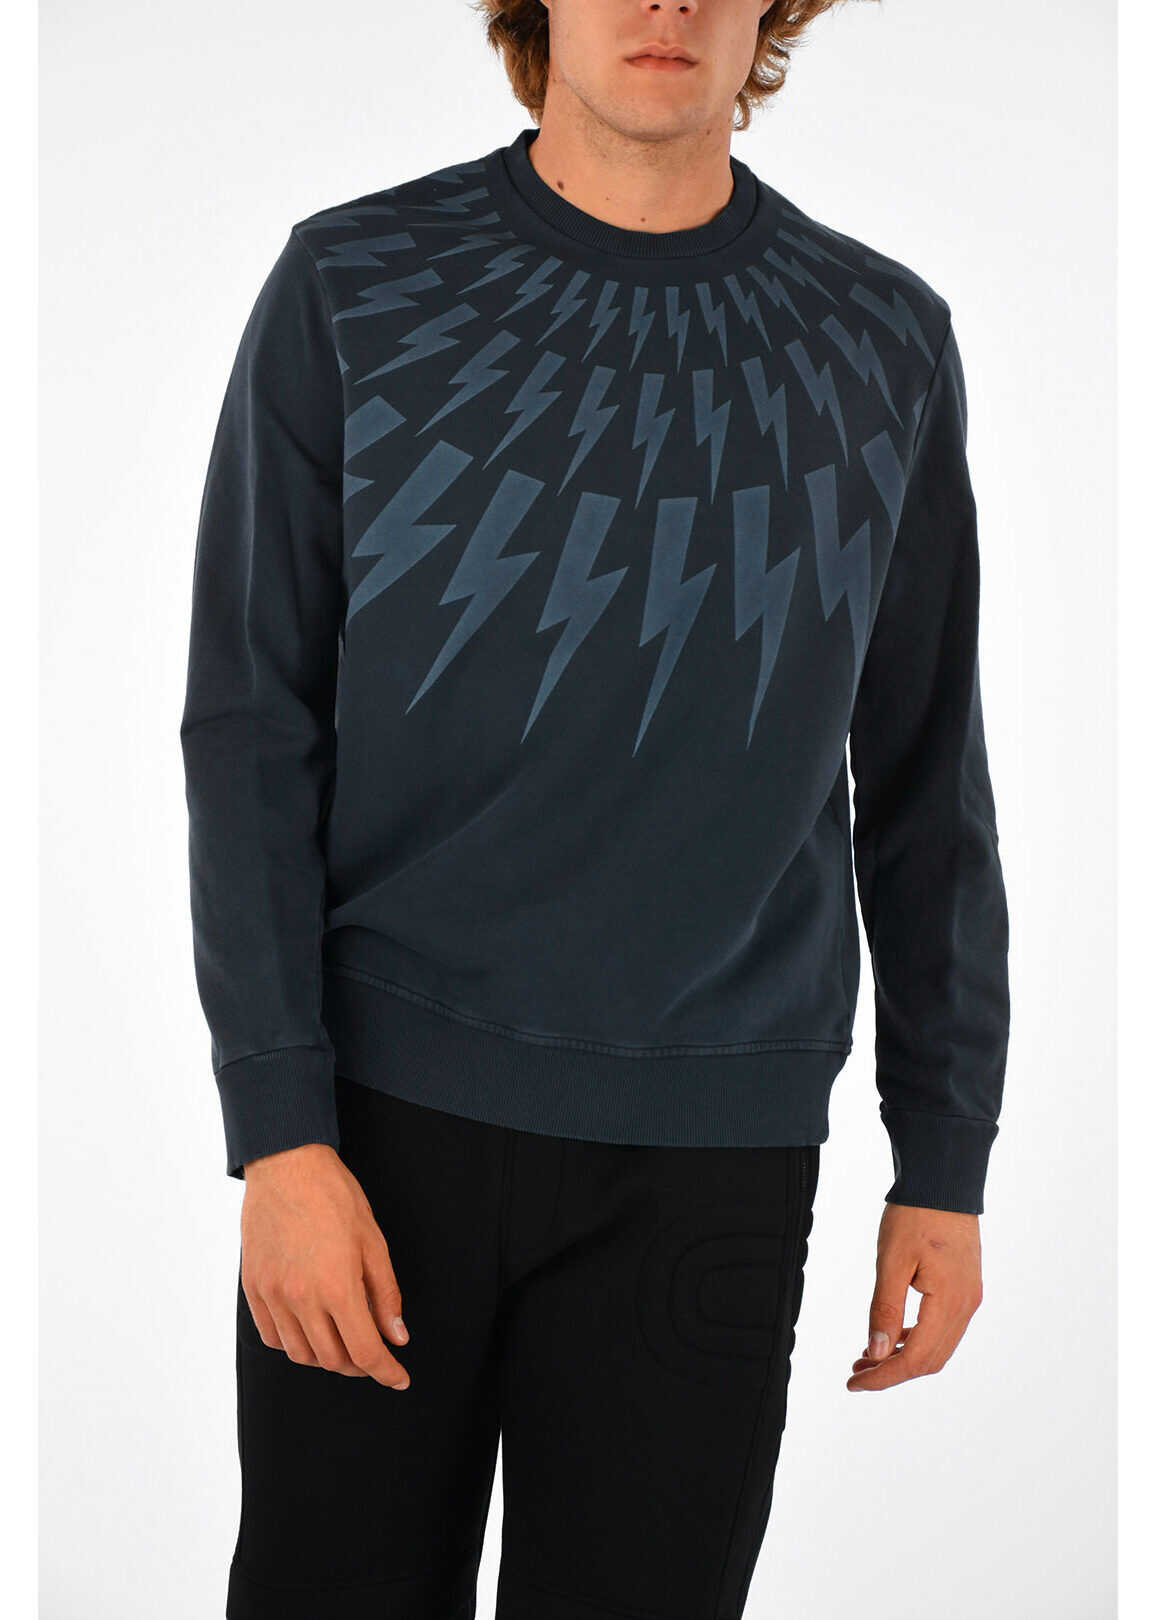 Neil Barrett Thunderbolt Sweatshirt MIDNIGHT BLUE